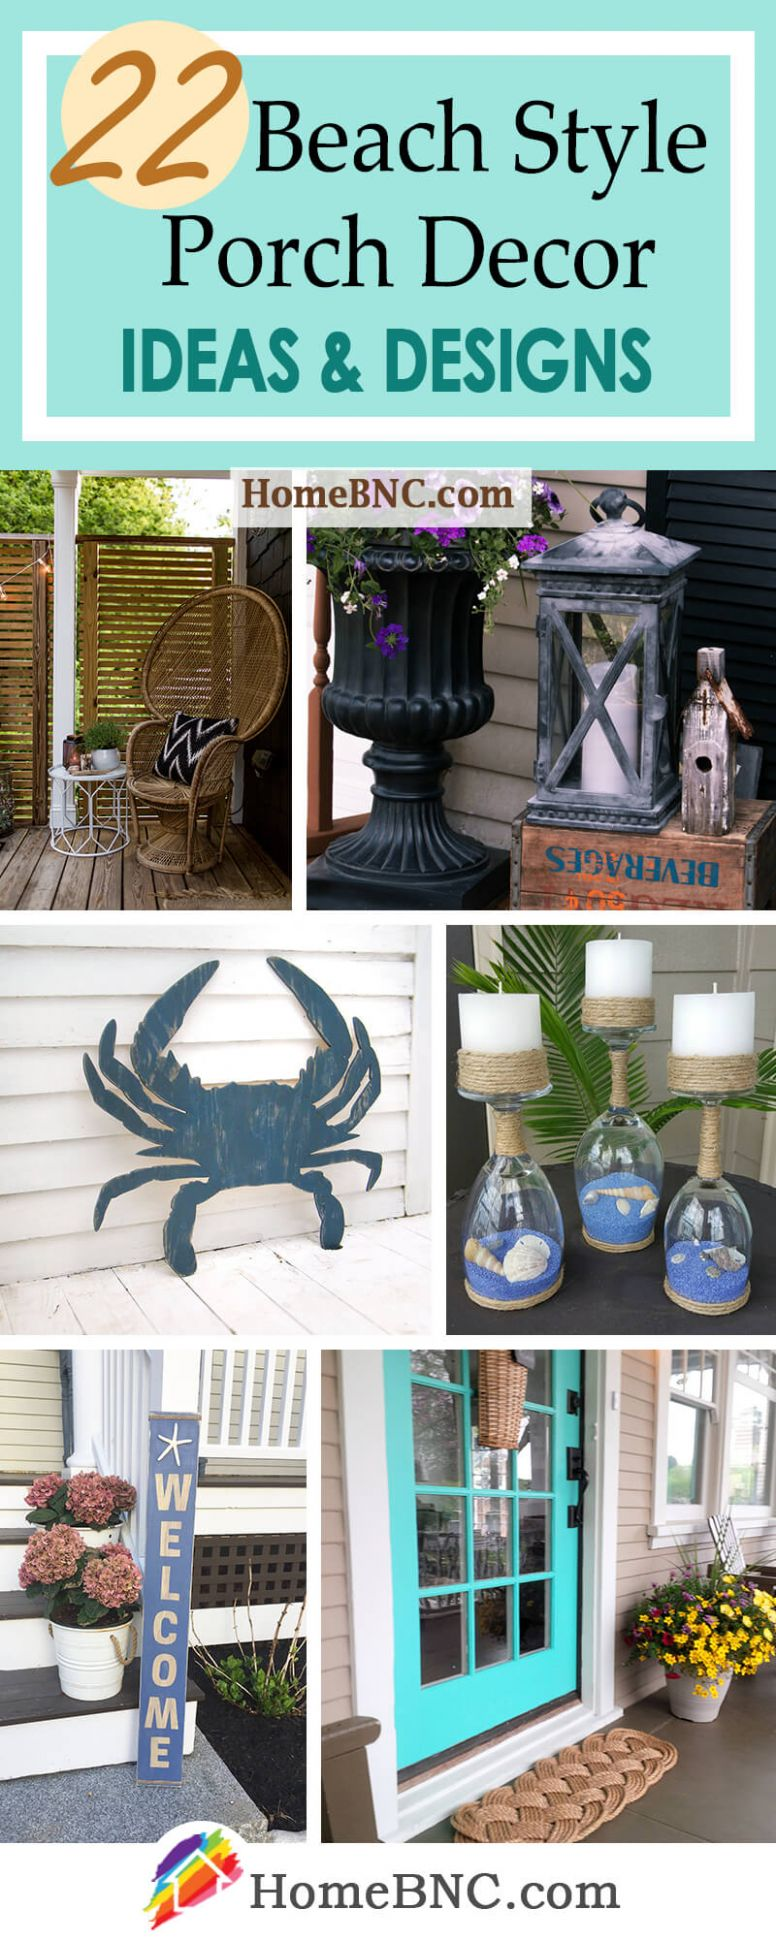 9 Best Beach Style Porch Decoration Ideas and Designs for 9